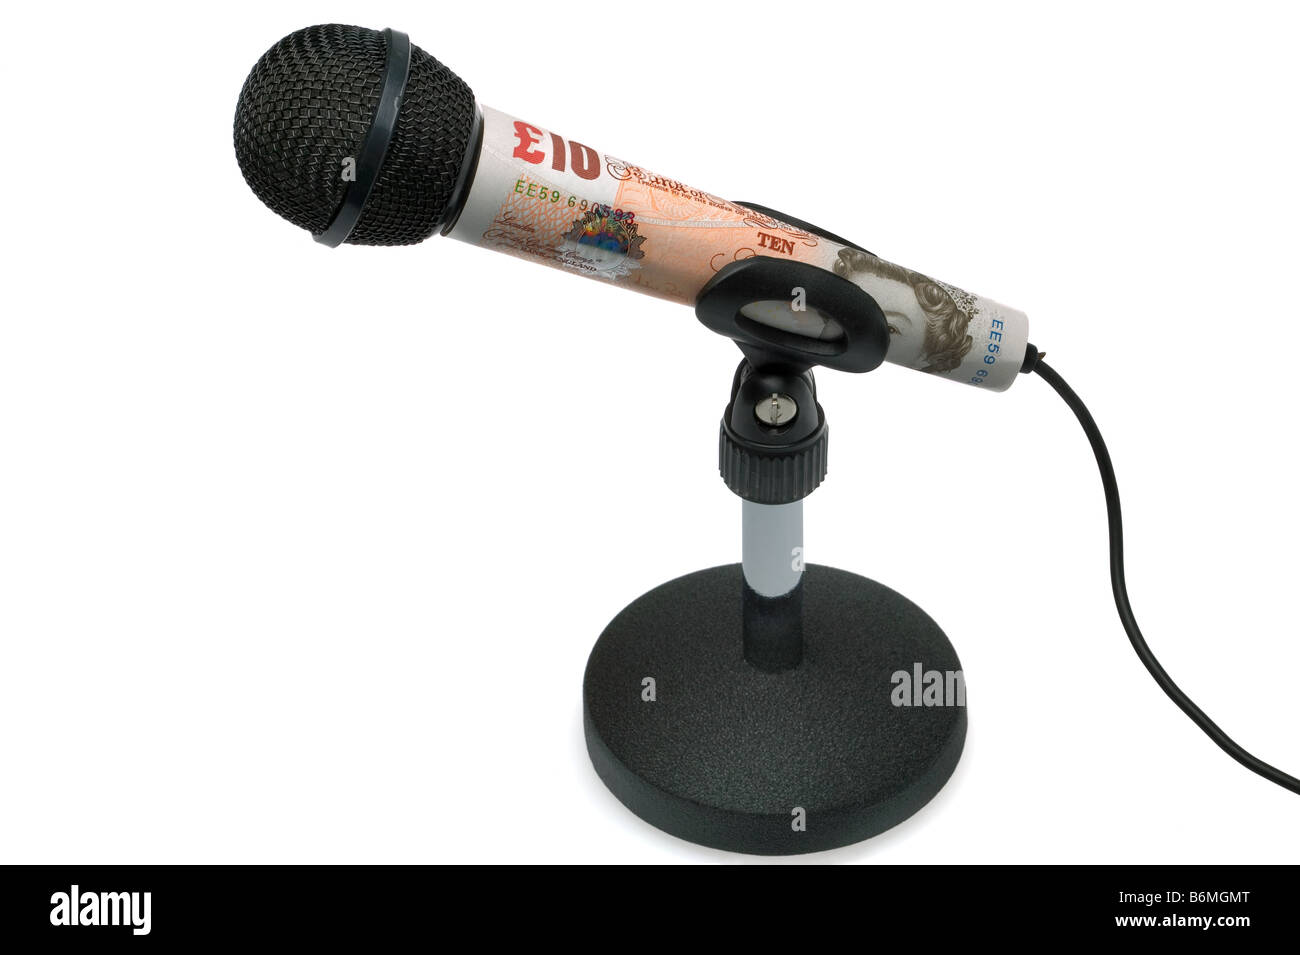 Money talks concept image of a ten pound note around a tabletop microphone isolated on a white background - Stock Image